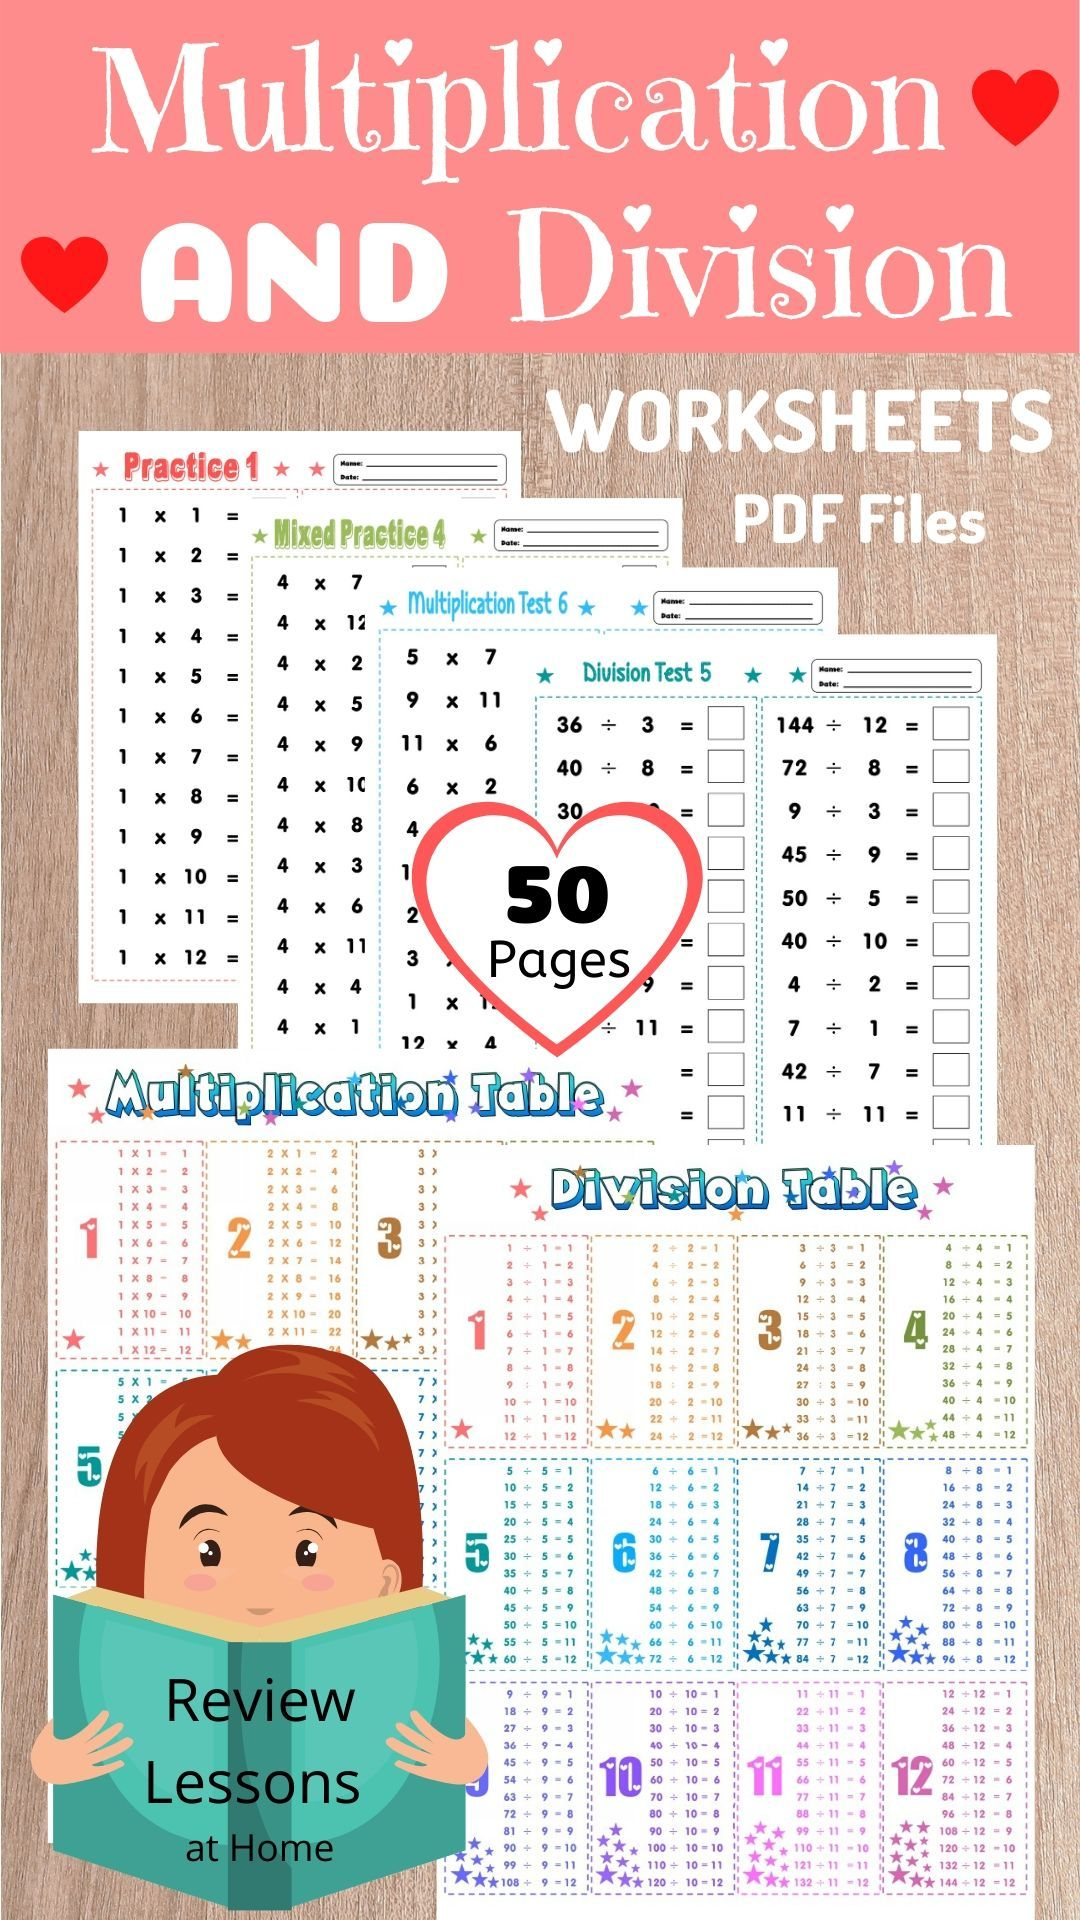 50 Multiplication And Division Worksheets Printable 1 12